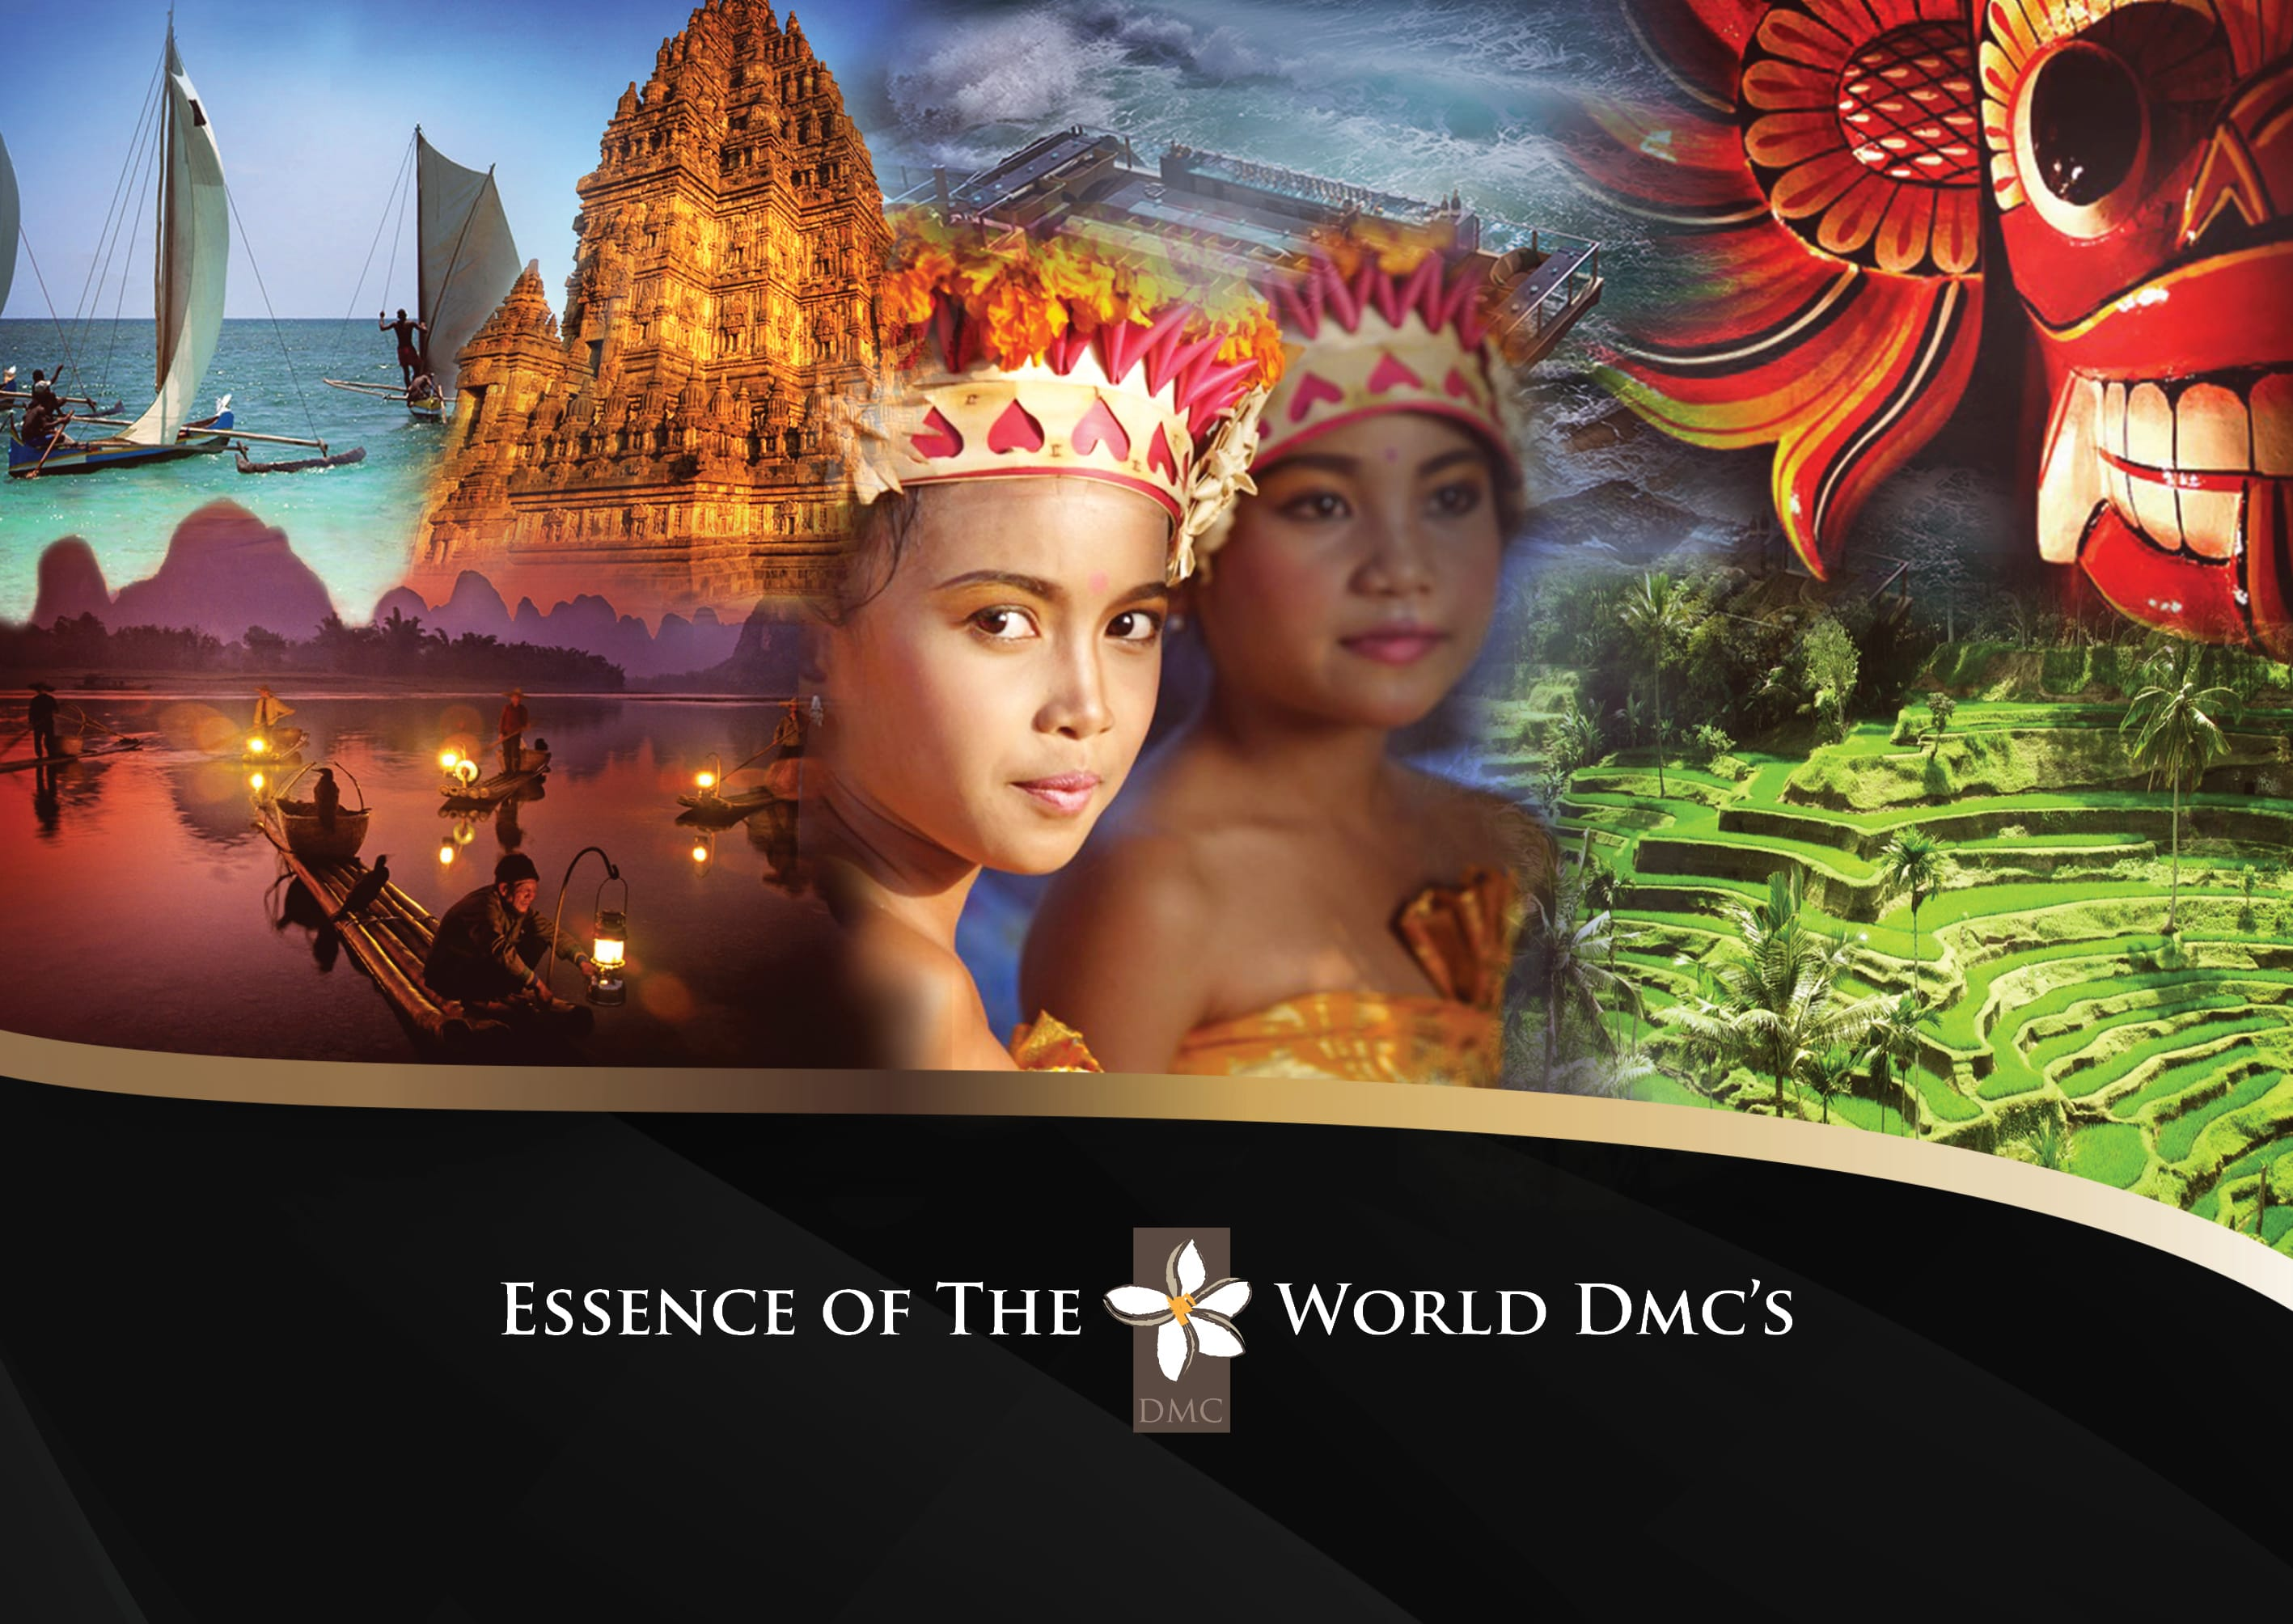 Essence of Bali / Essence of the world will be at Imex Germany